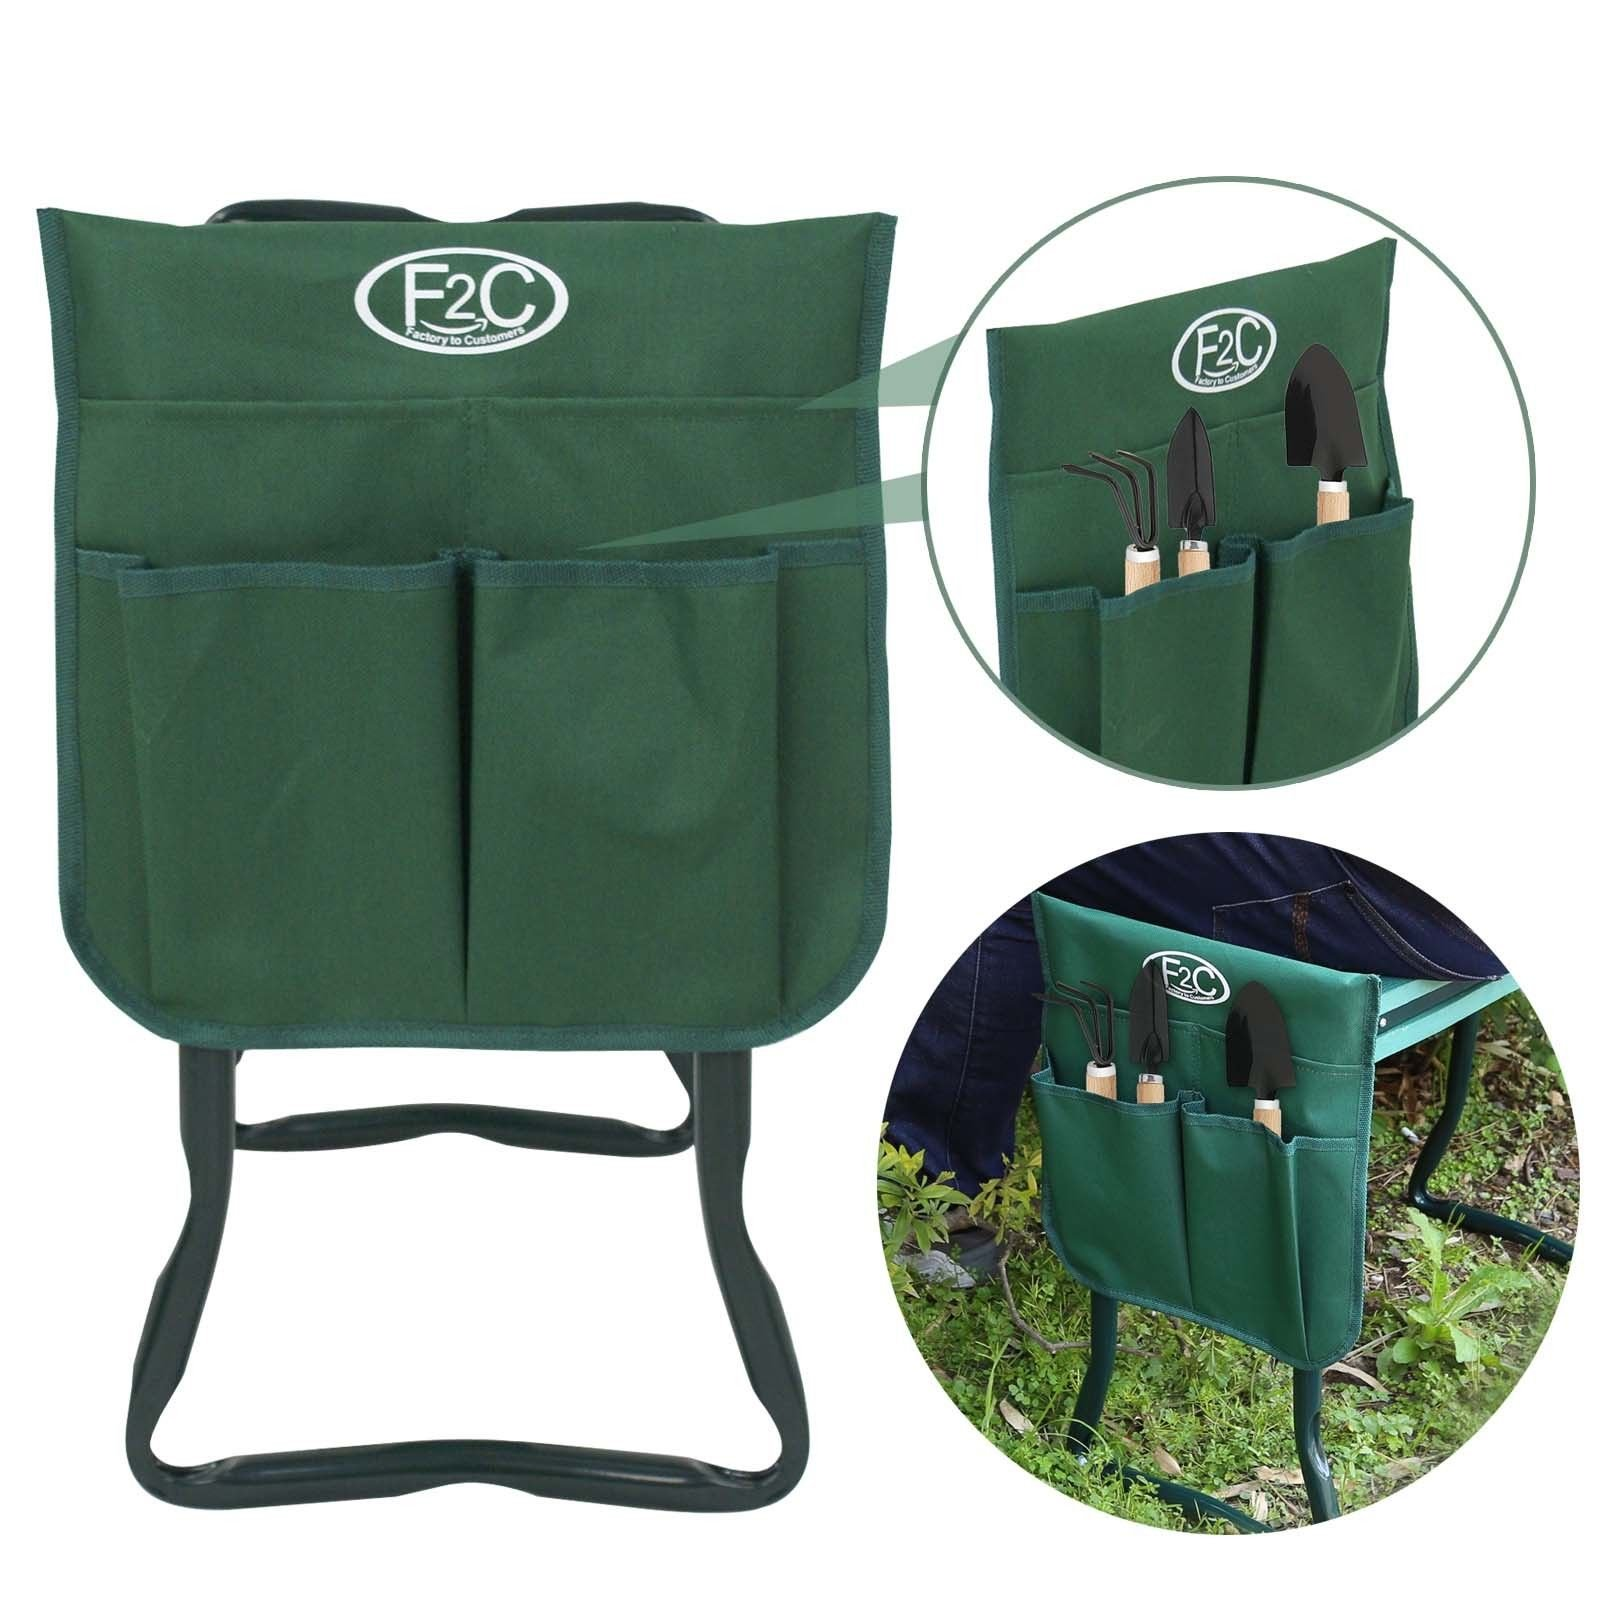 (GG) Garden Kneeler Seat w/EVA Folding Portable Bench Kneeling Pad and Tool Pouch New by Good Grannies by (GG) (Image #5)